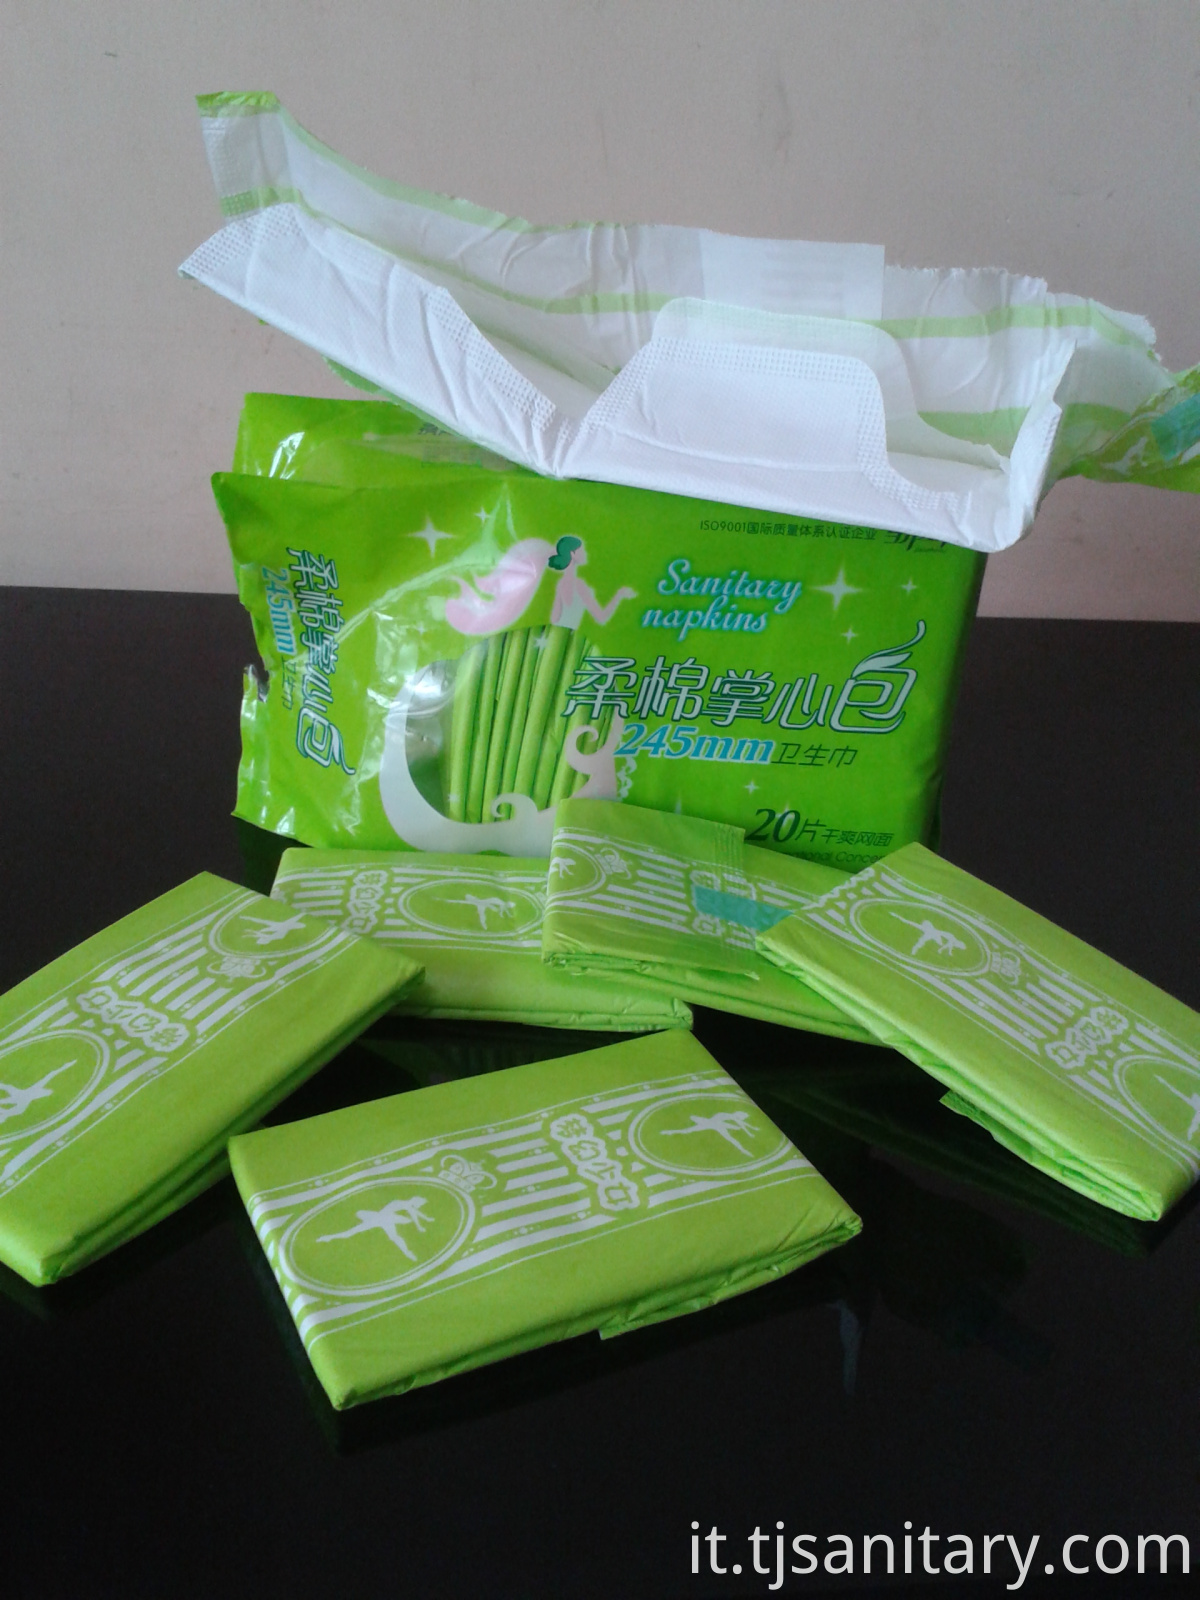 245mm sanitary towels